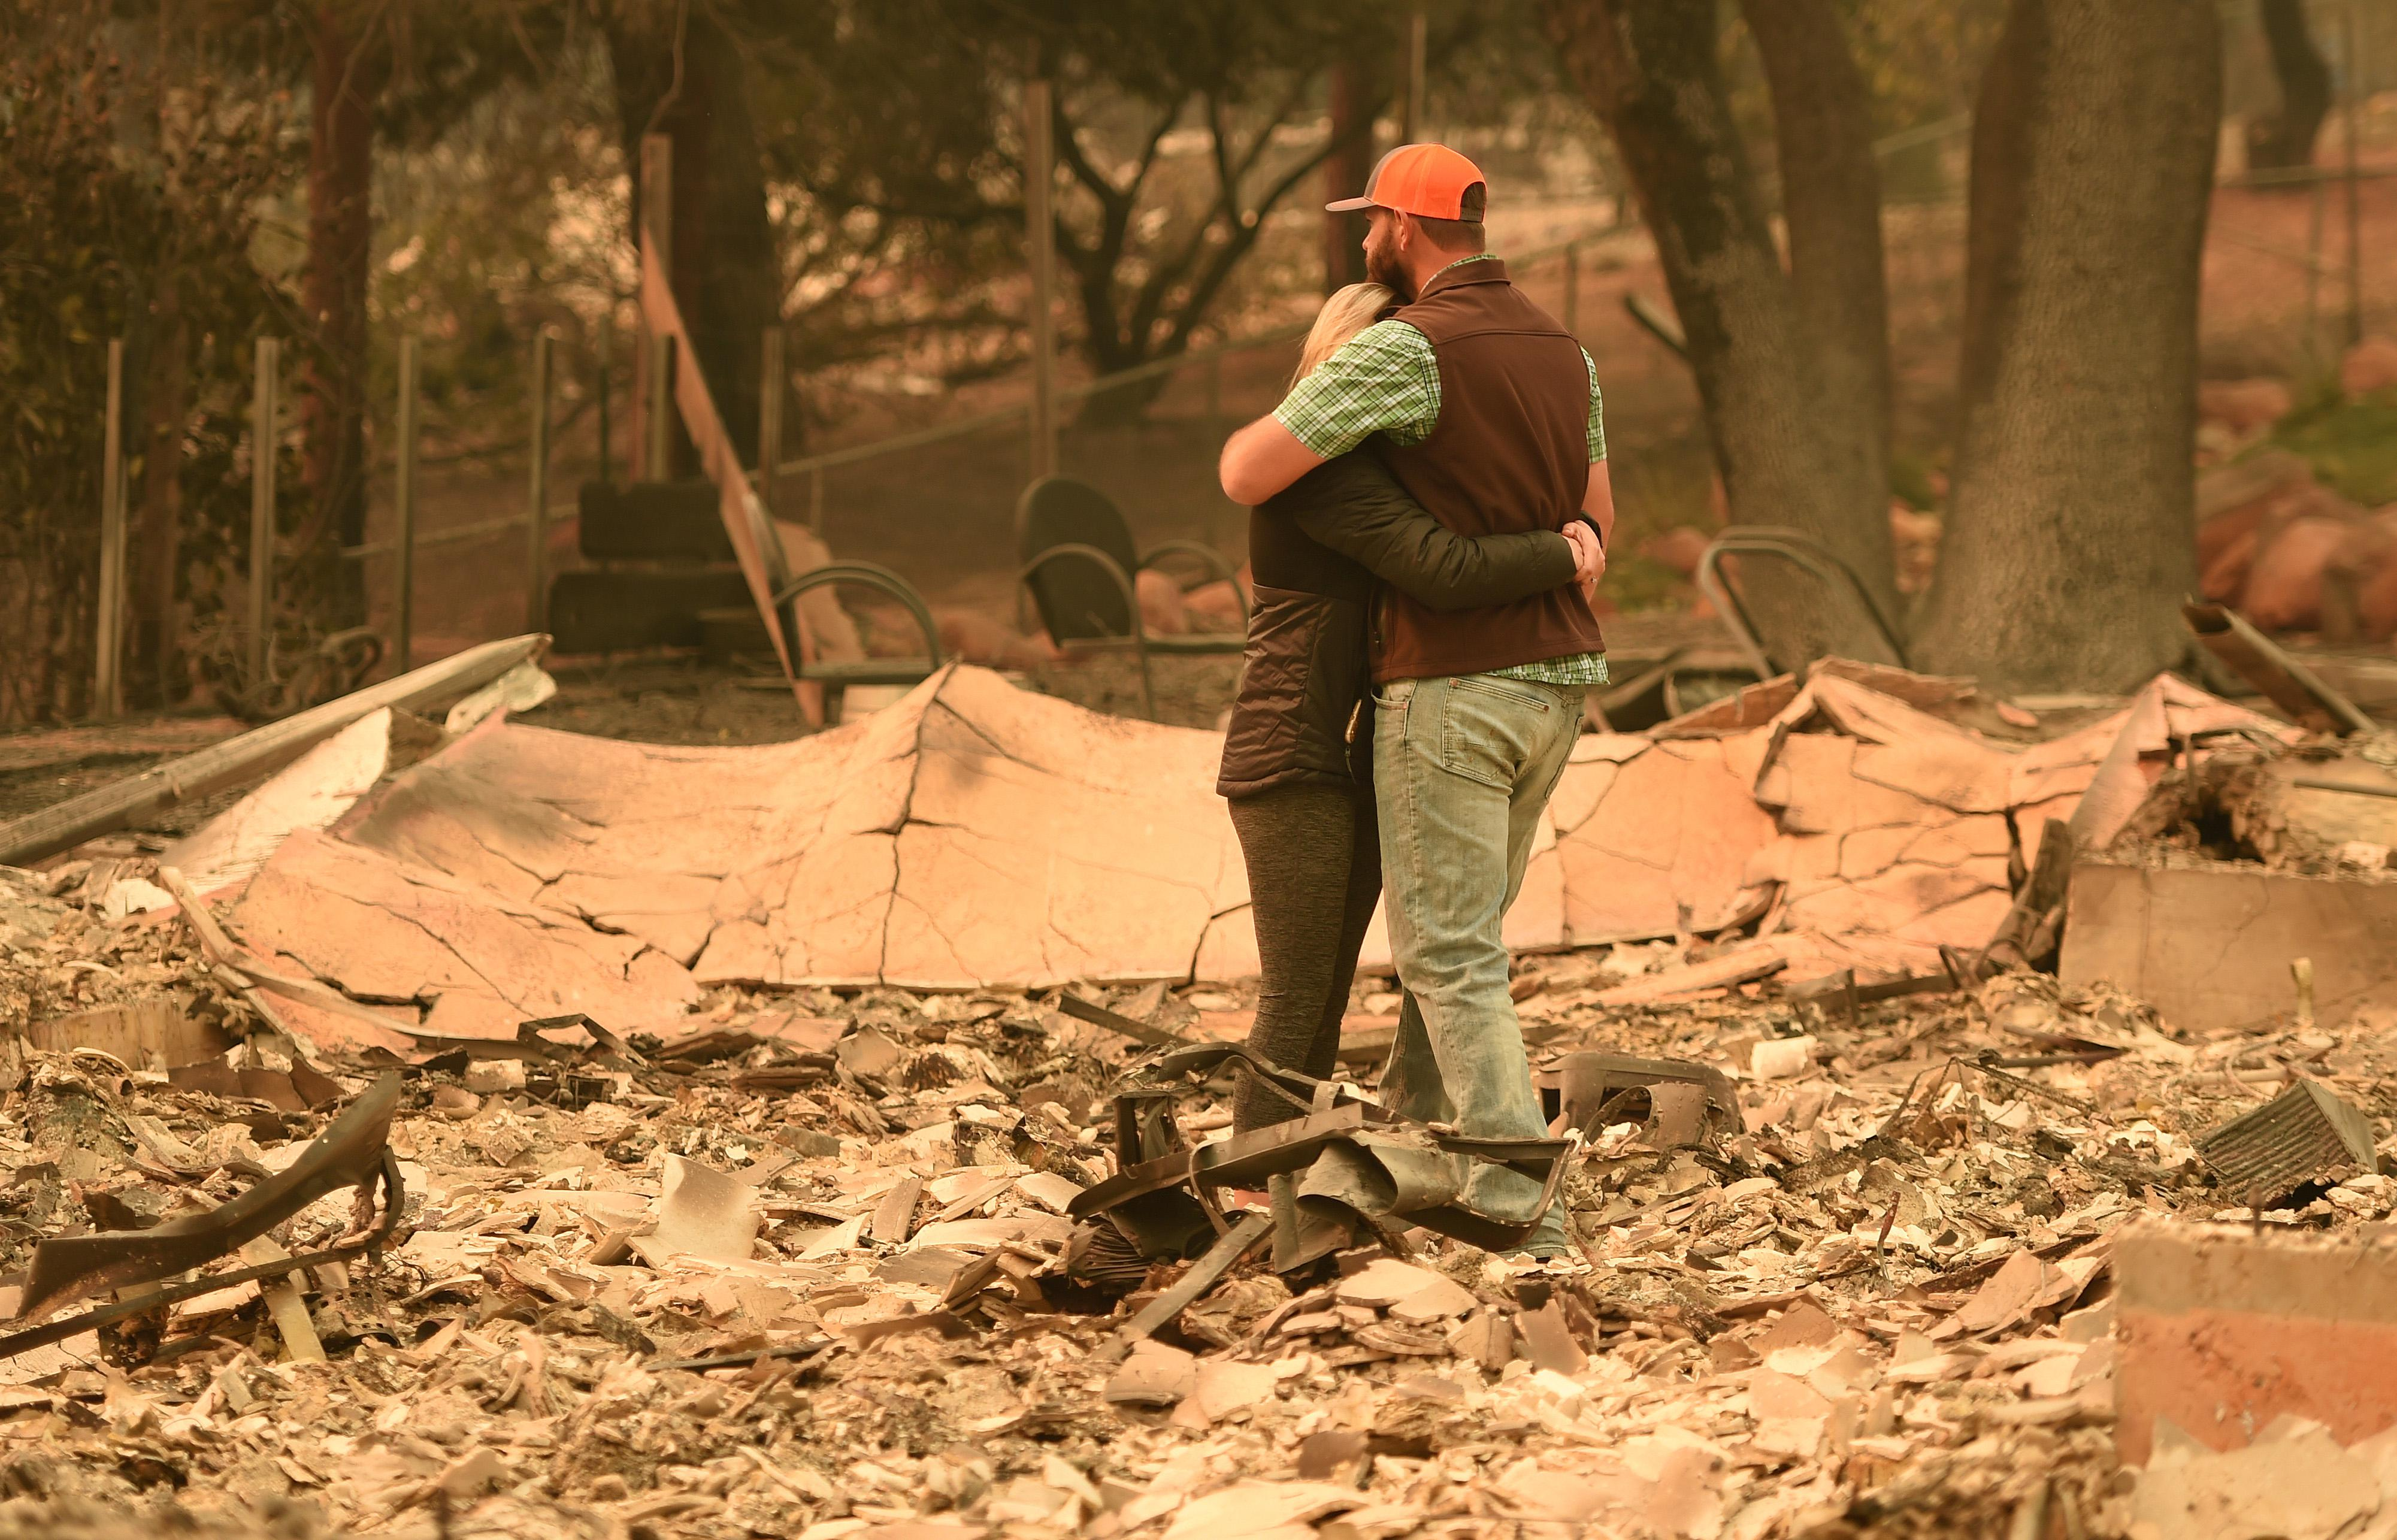 A couple embrace in the middle of the rubble of their home.